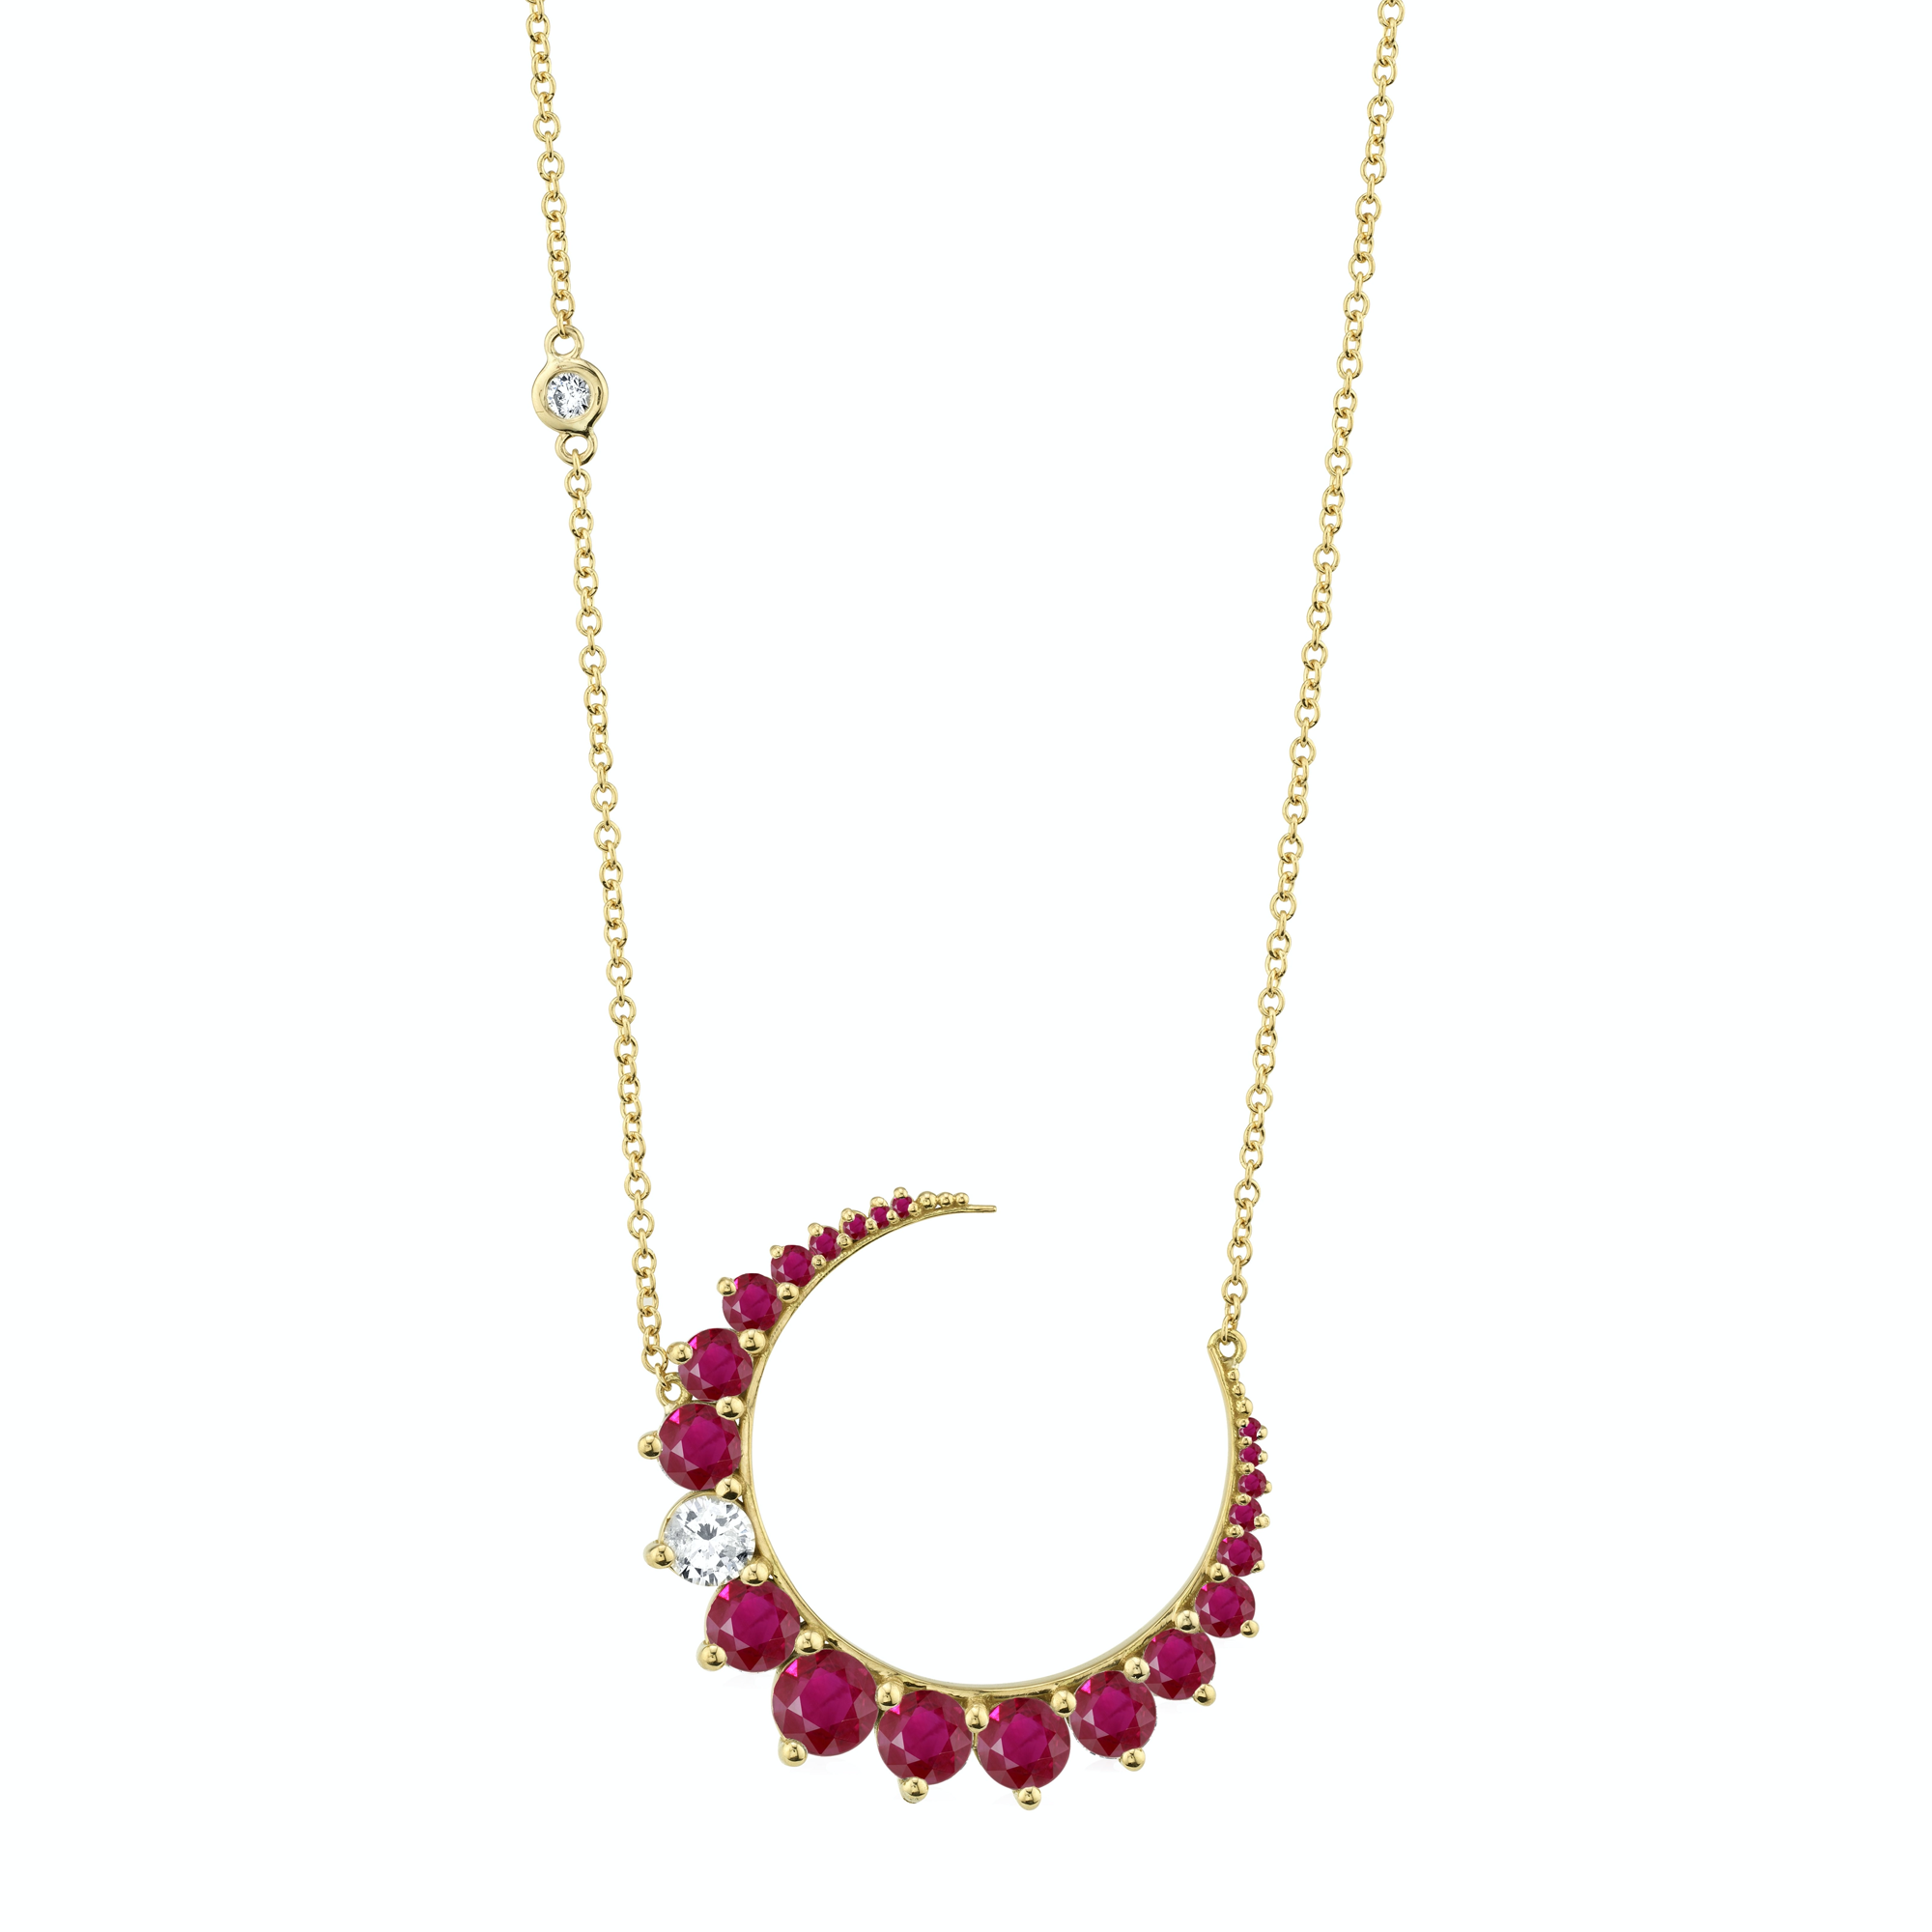 Shay Crescent Moon Necklace - Diamond & Ruby - Necklaces - Broken English Jewelry